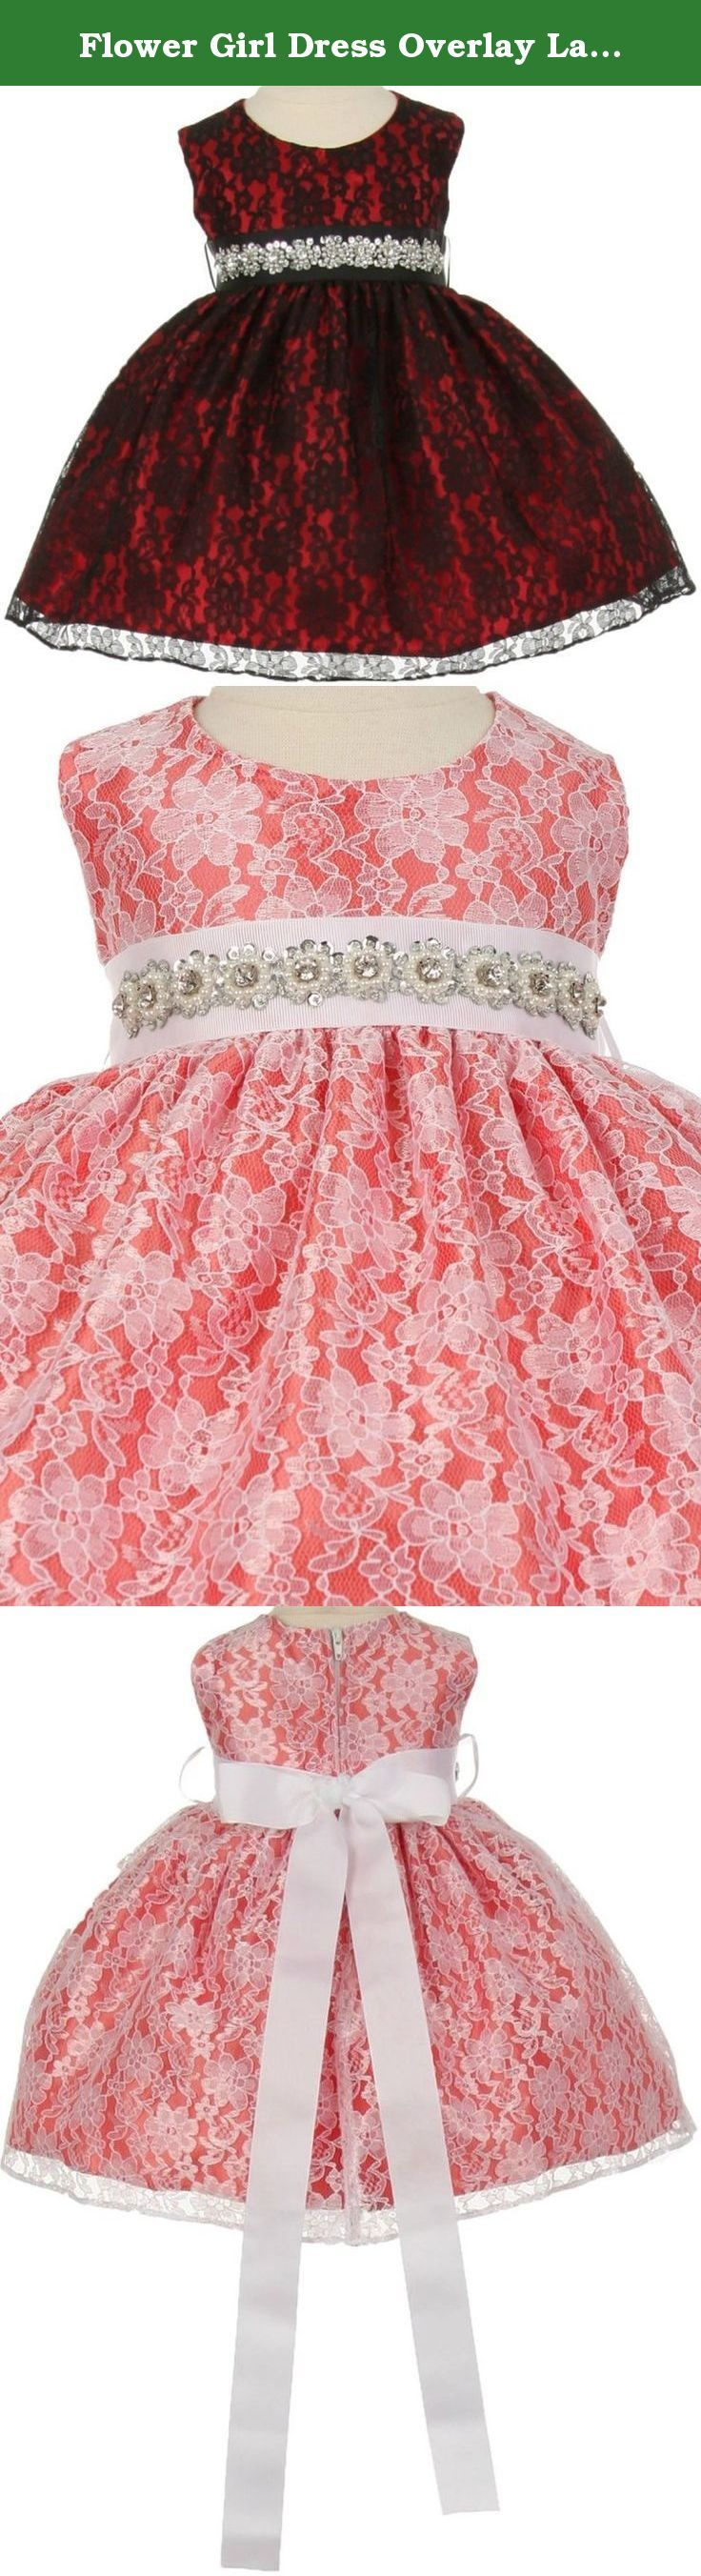 Flower Girl Dress Overlay Lace with Rhinestone Belt for Baby & Infant Red Black (Baby) L 11.32BT. Elegant two tone lace dress with a beautiful dazzling pearl sequin rhinestone ribbon sash. Skirt has the perfect amount of fullness. An absolutely gorgeous special occasion dress for your little girl. This dress is perfect for birthday parties, fomal events, religious occasions, holidays and more. Comes in girl sizes and baby sizes.